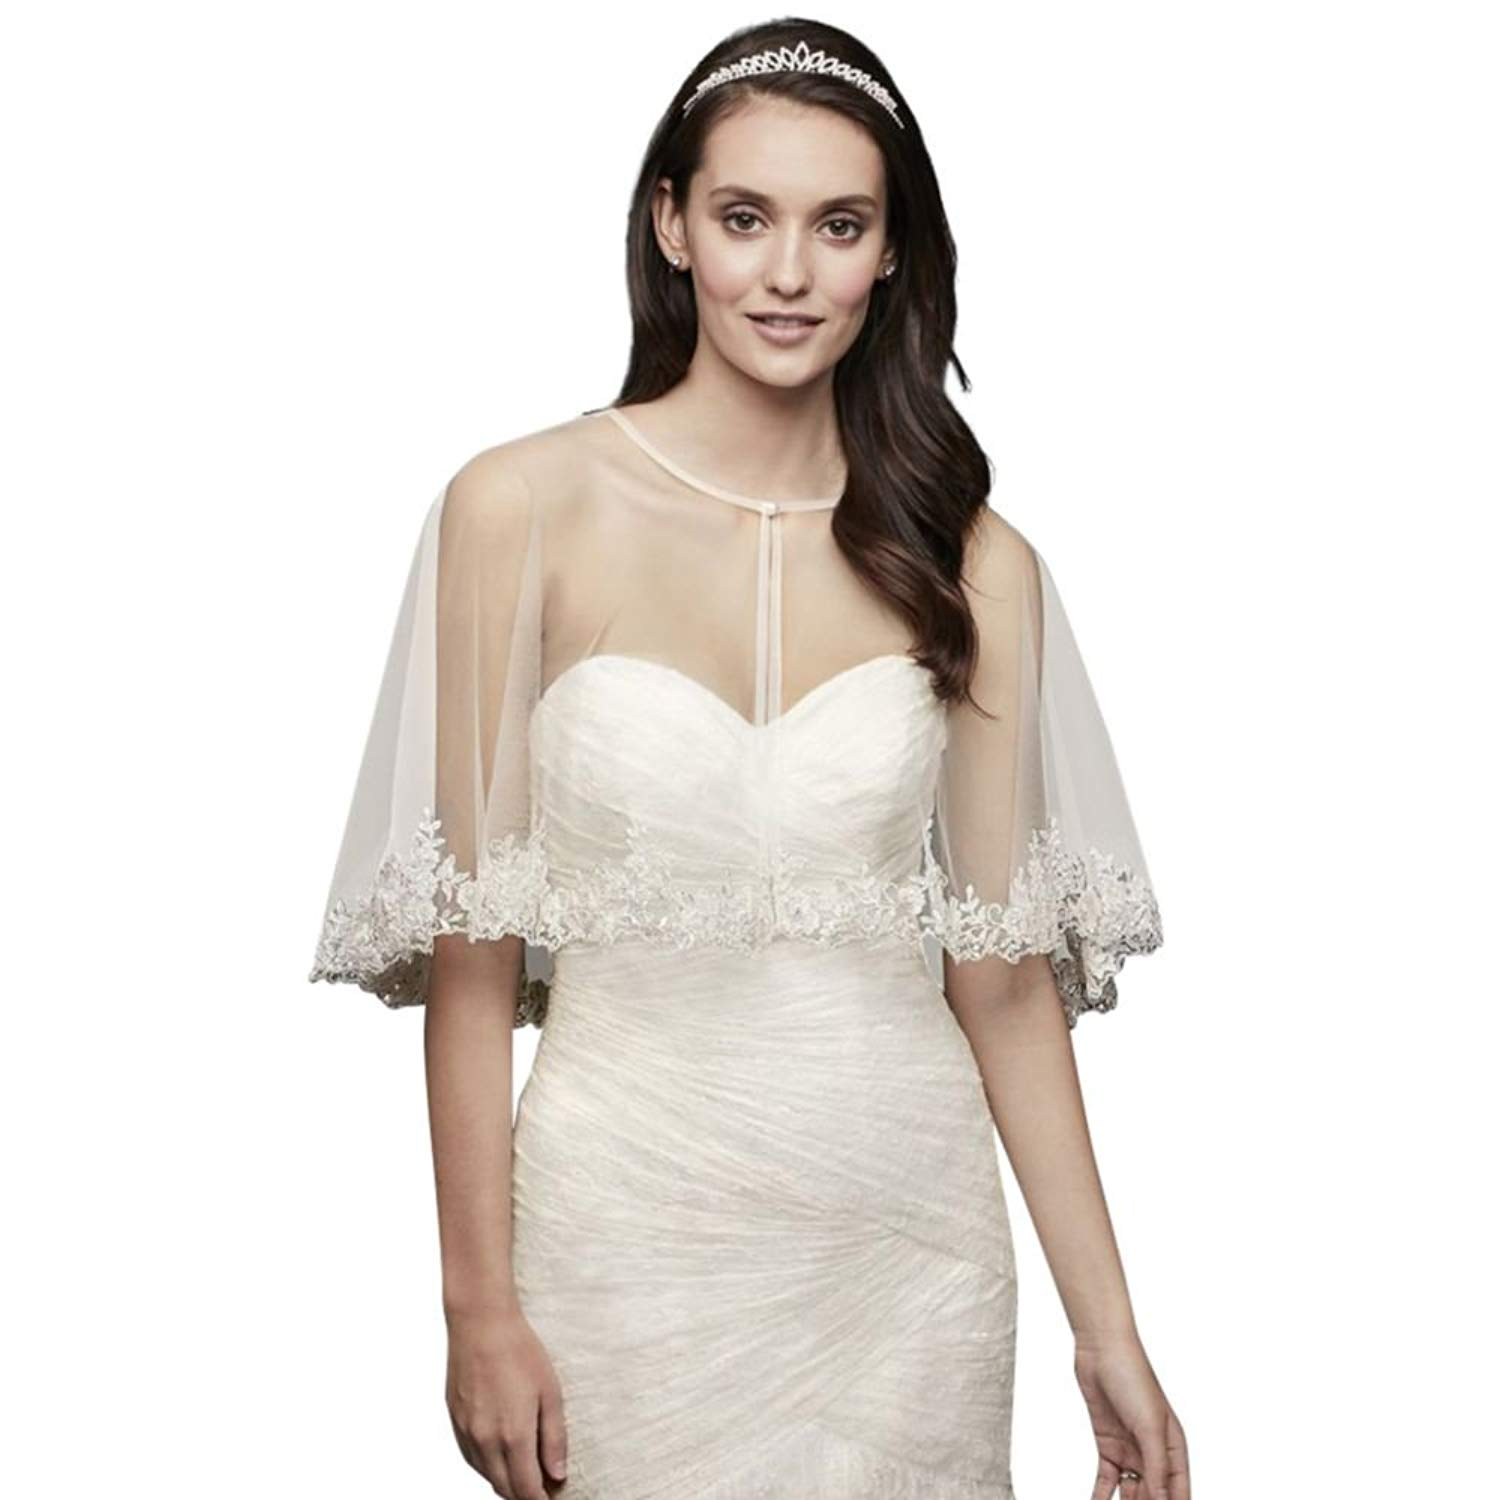 0a8f64fc67 Get Quotations · David s Bridal Tulle Cape Beaded Lace Applique Trim Style  OW2116